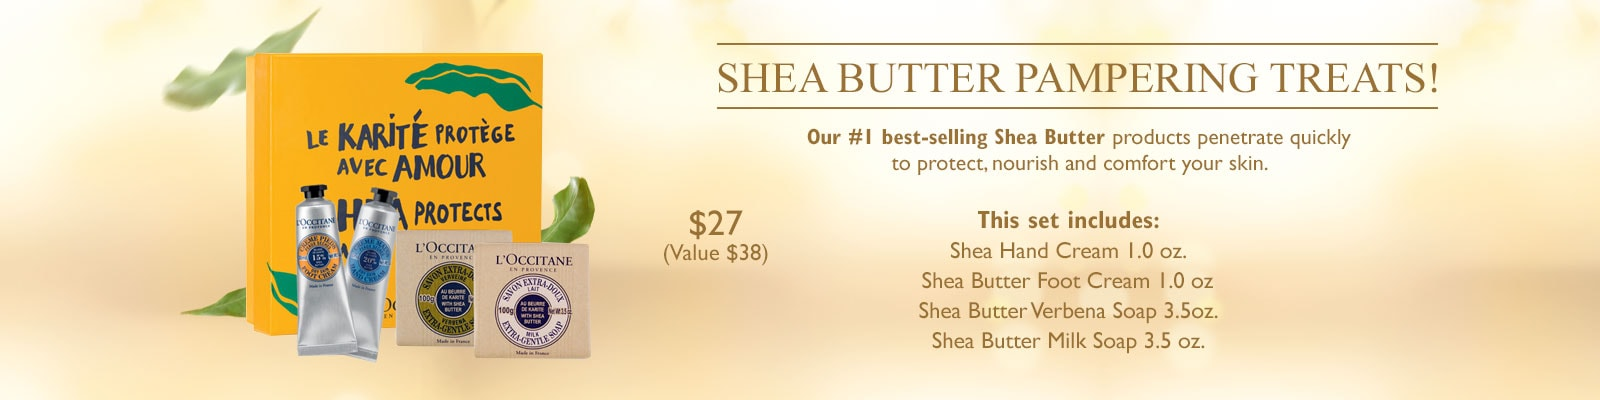 Shea Butter Pampering Treat! Our #1 best-selling Shea Butter products penetrate quickly to protect, nourish and comfort your skin.